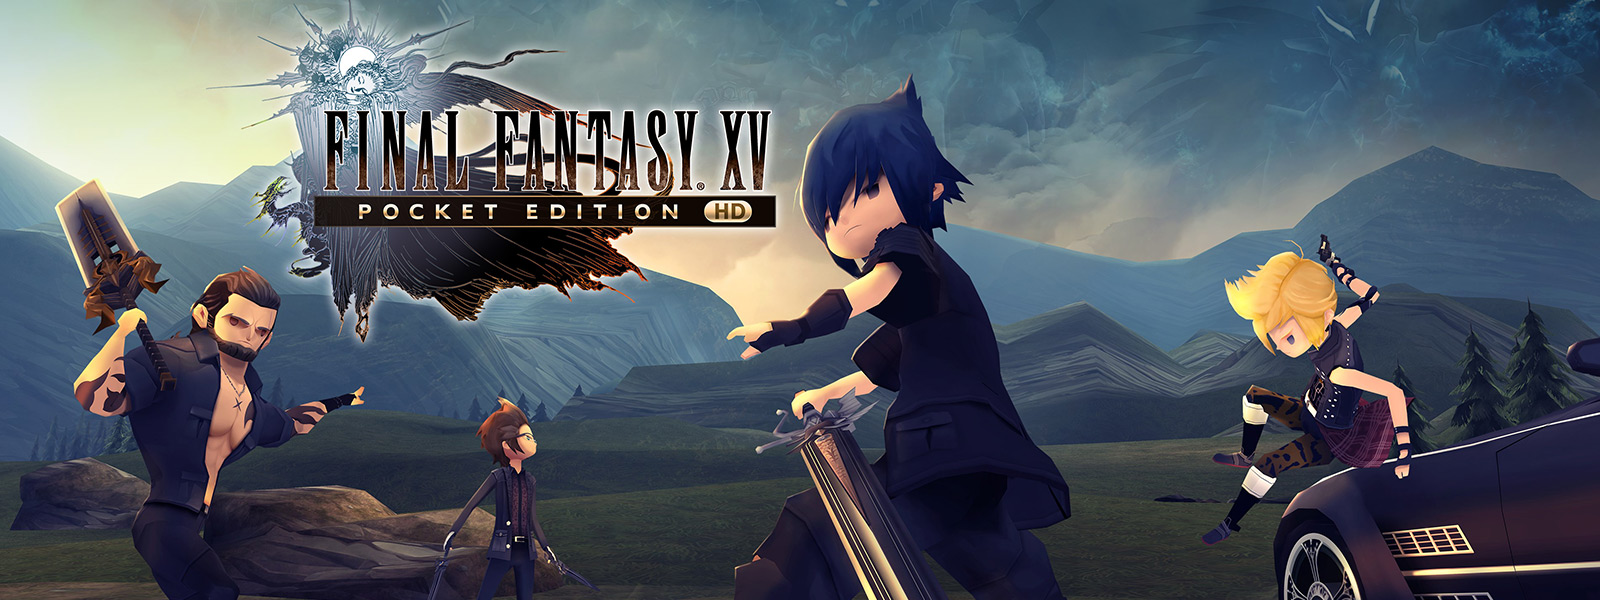 FINAL FANTASY XV POCKET EDITION 中的 Gladio、Noctis、Prompto 和 Ignis 準備打鬥